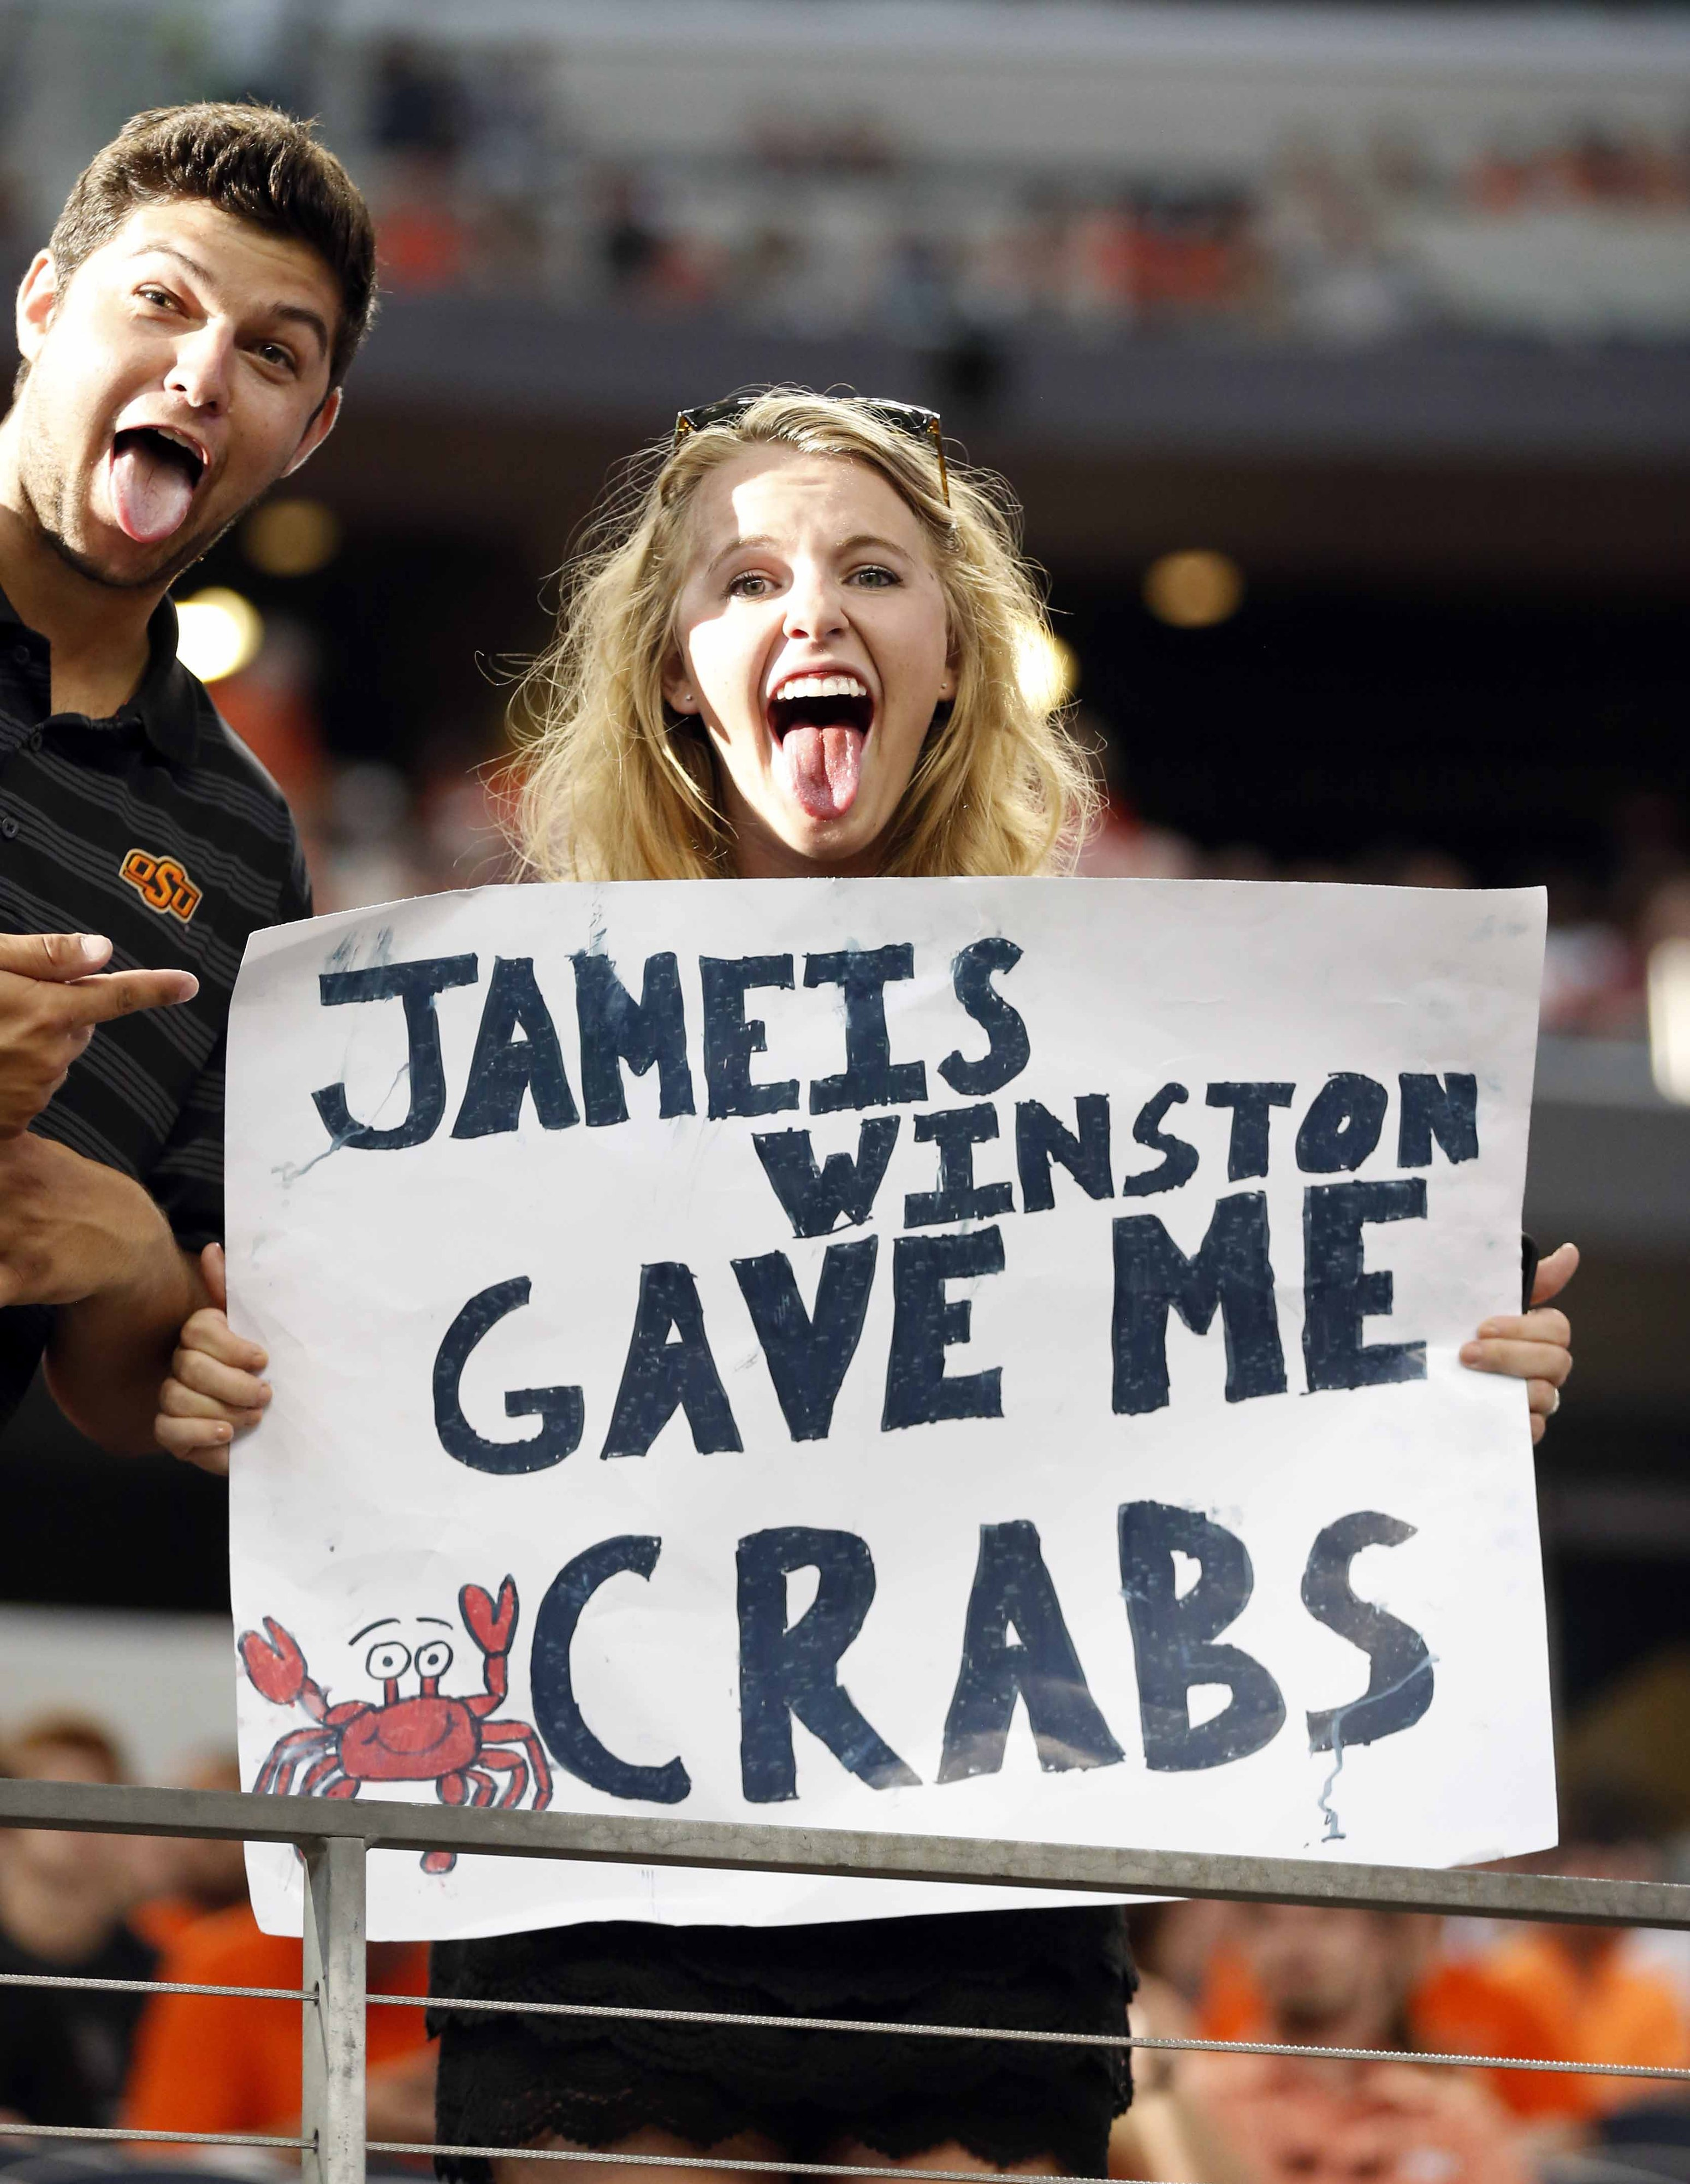 More than a dozen Jameis Winston crab legs signs at 'College ...